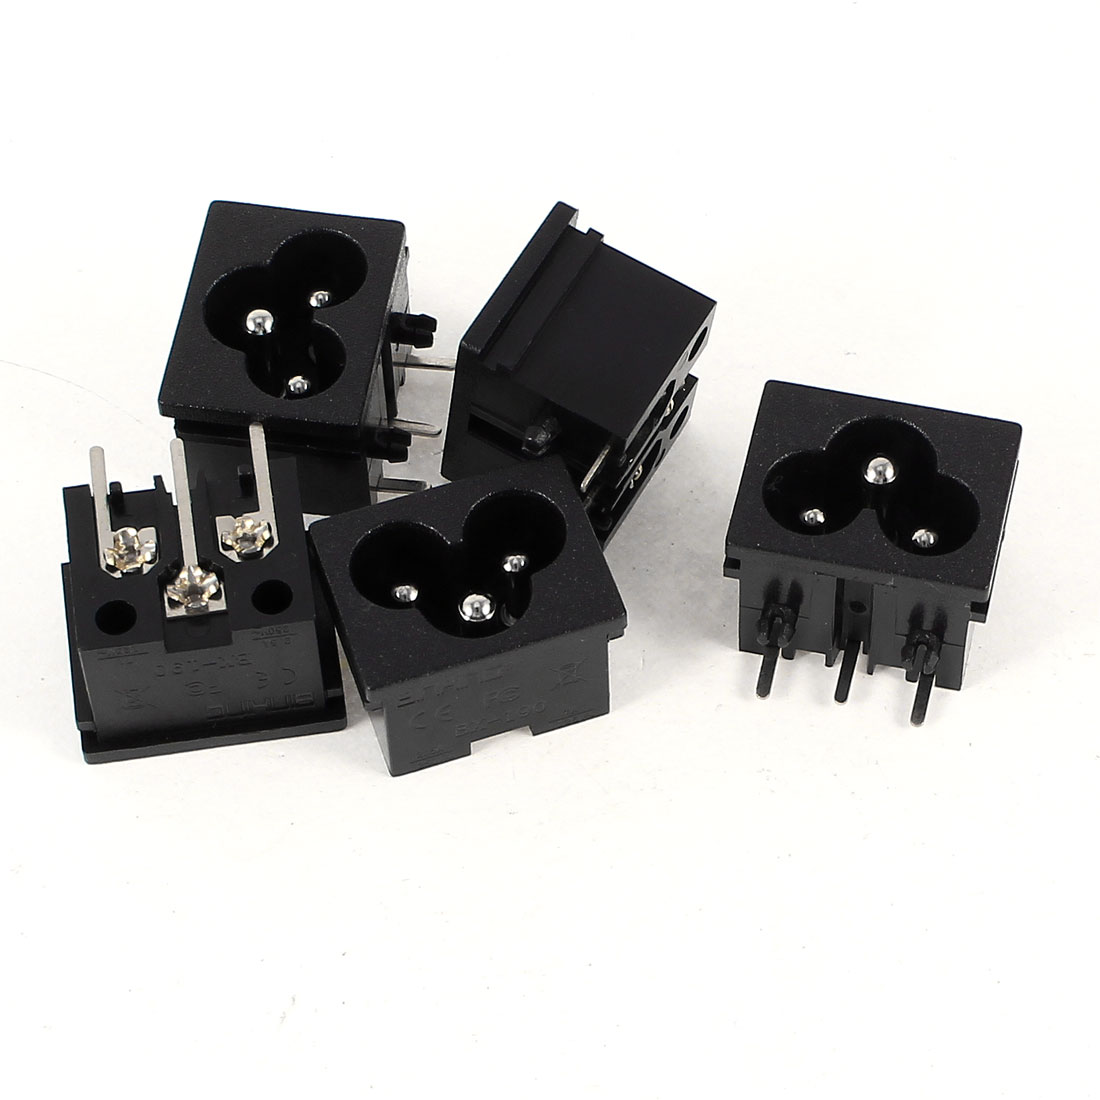 5 Pcs AC 250V/125V 2.5A/7A IEC320 C6 Male Power Inlet Socket Adapter